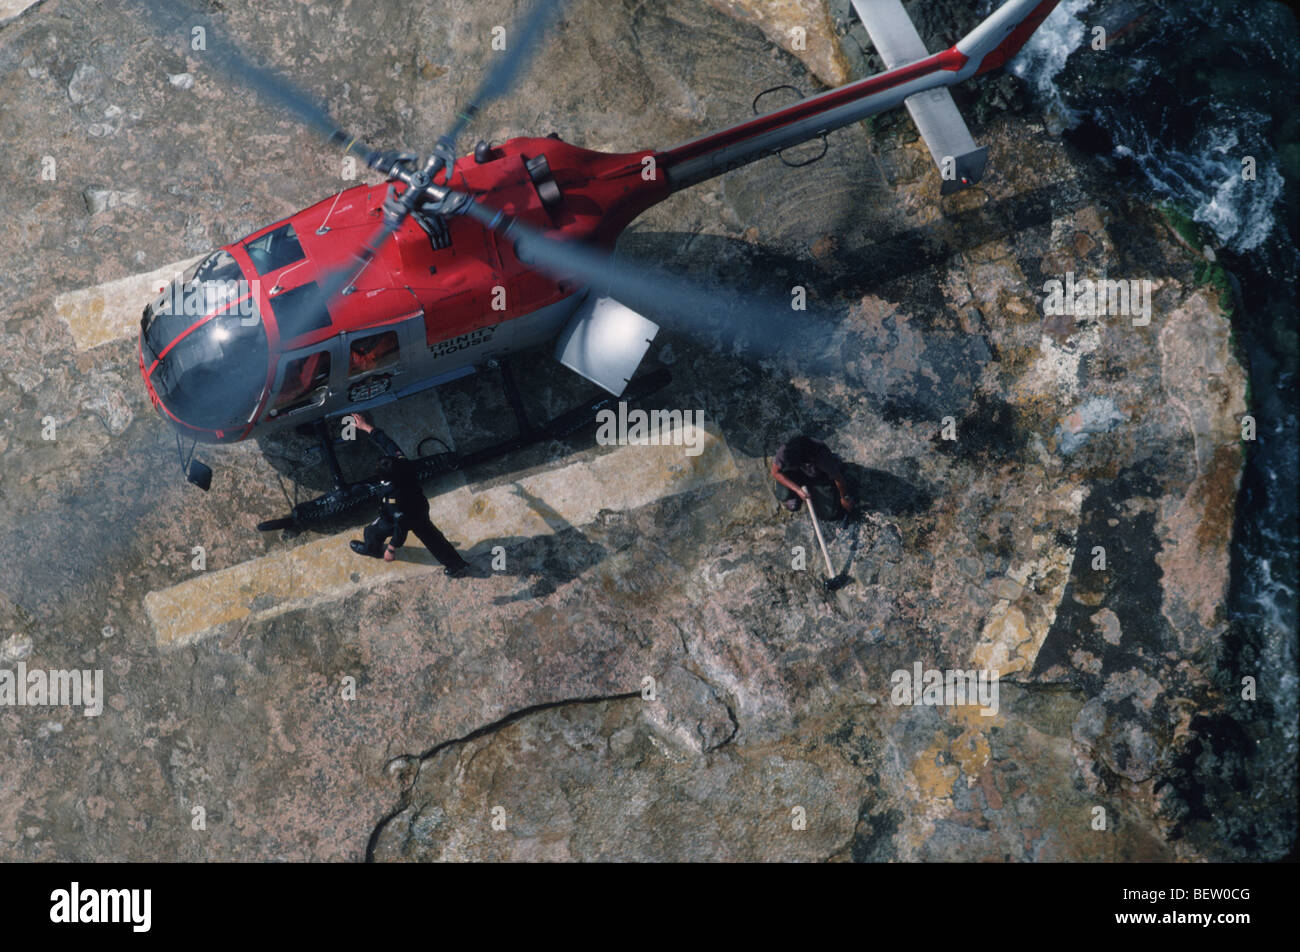 Bolkow 105 helicopter on landing site - Stock Image